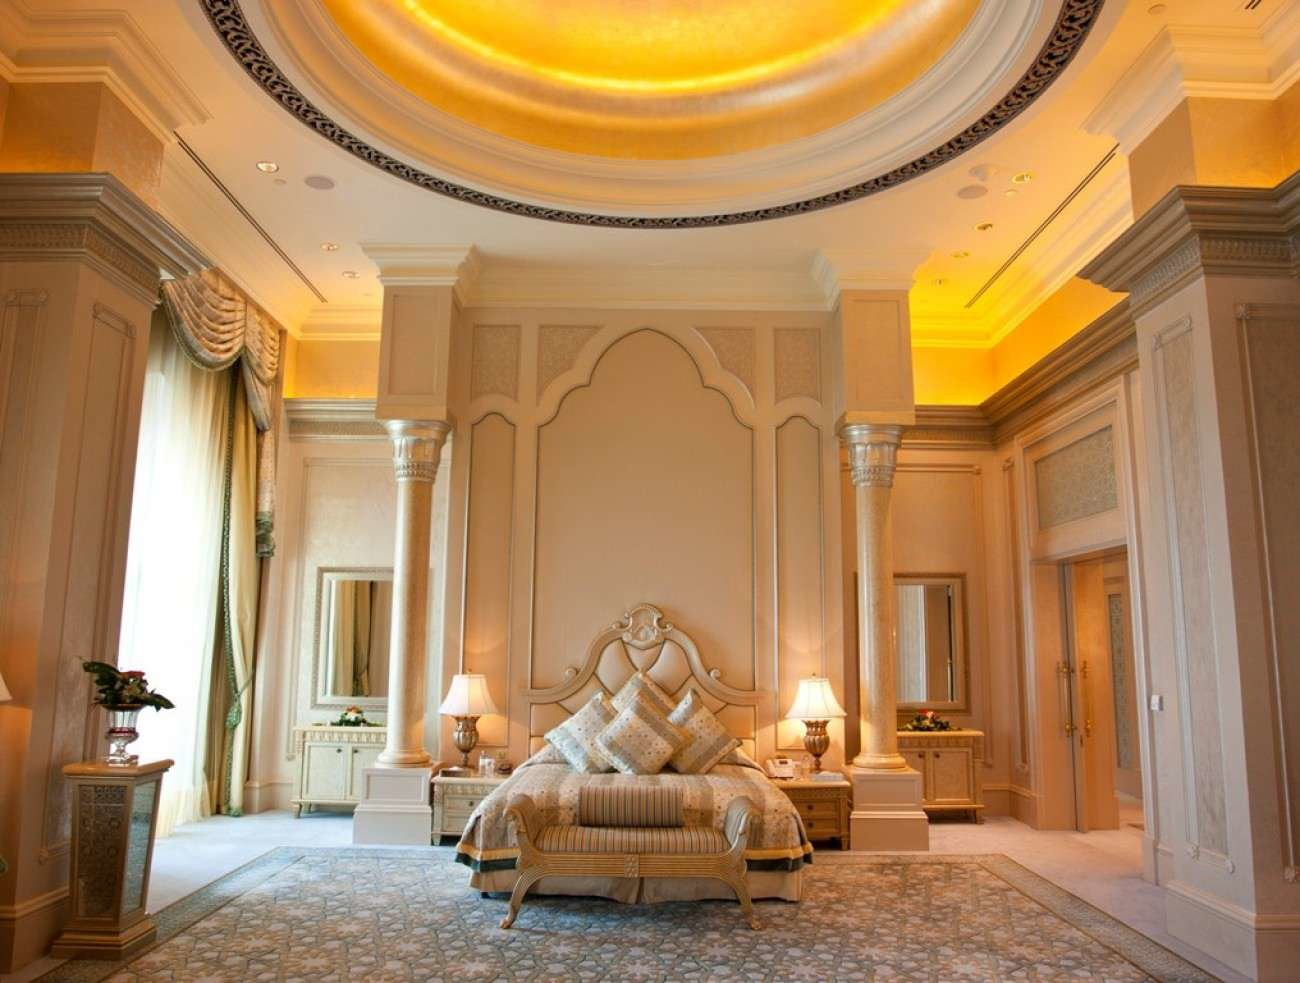 Best Luxury Hotels Most Magnificent Hotel Suites With Pictures